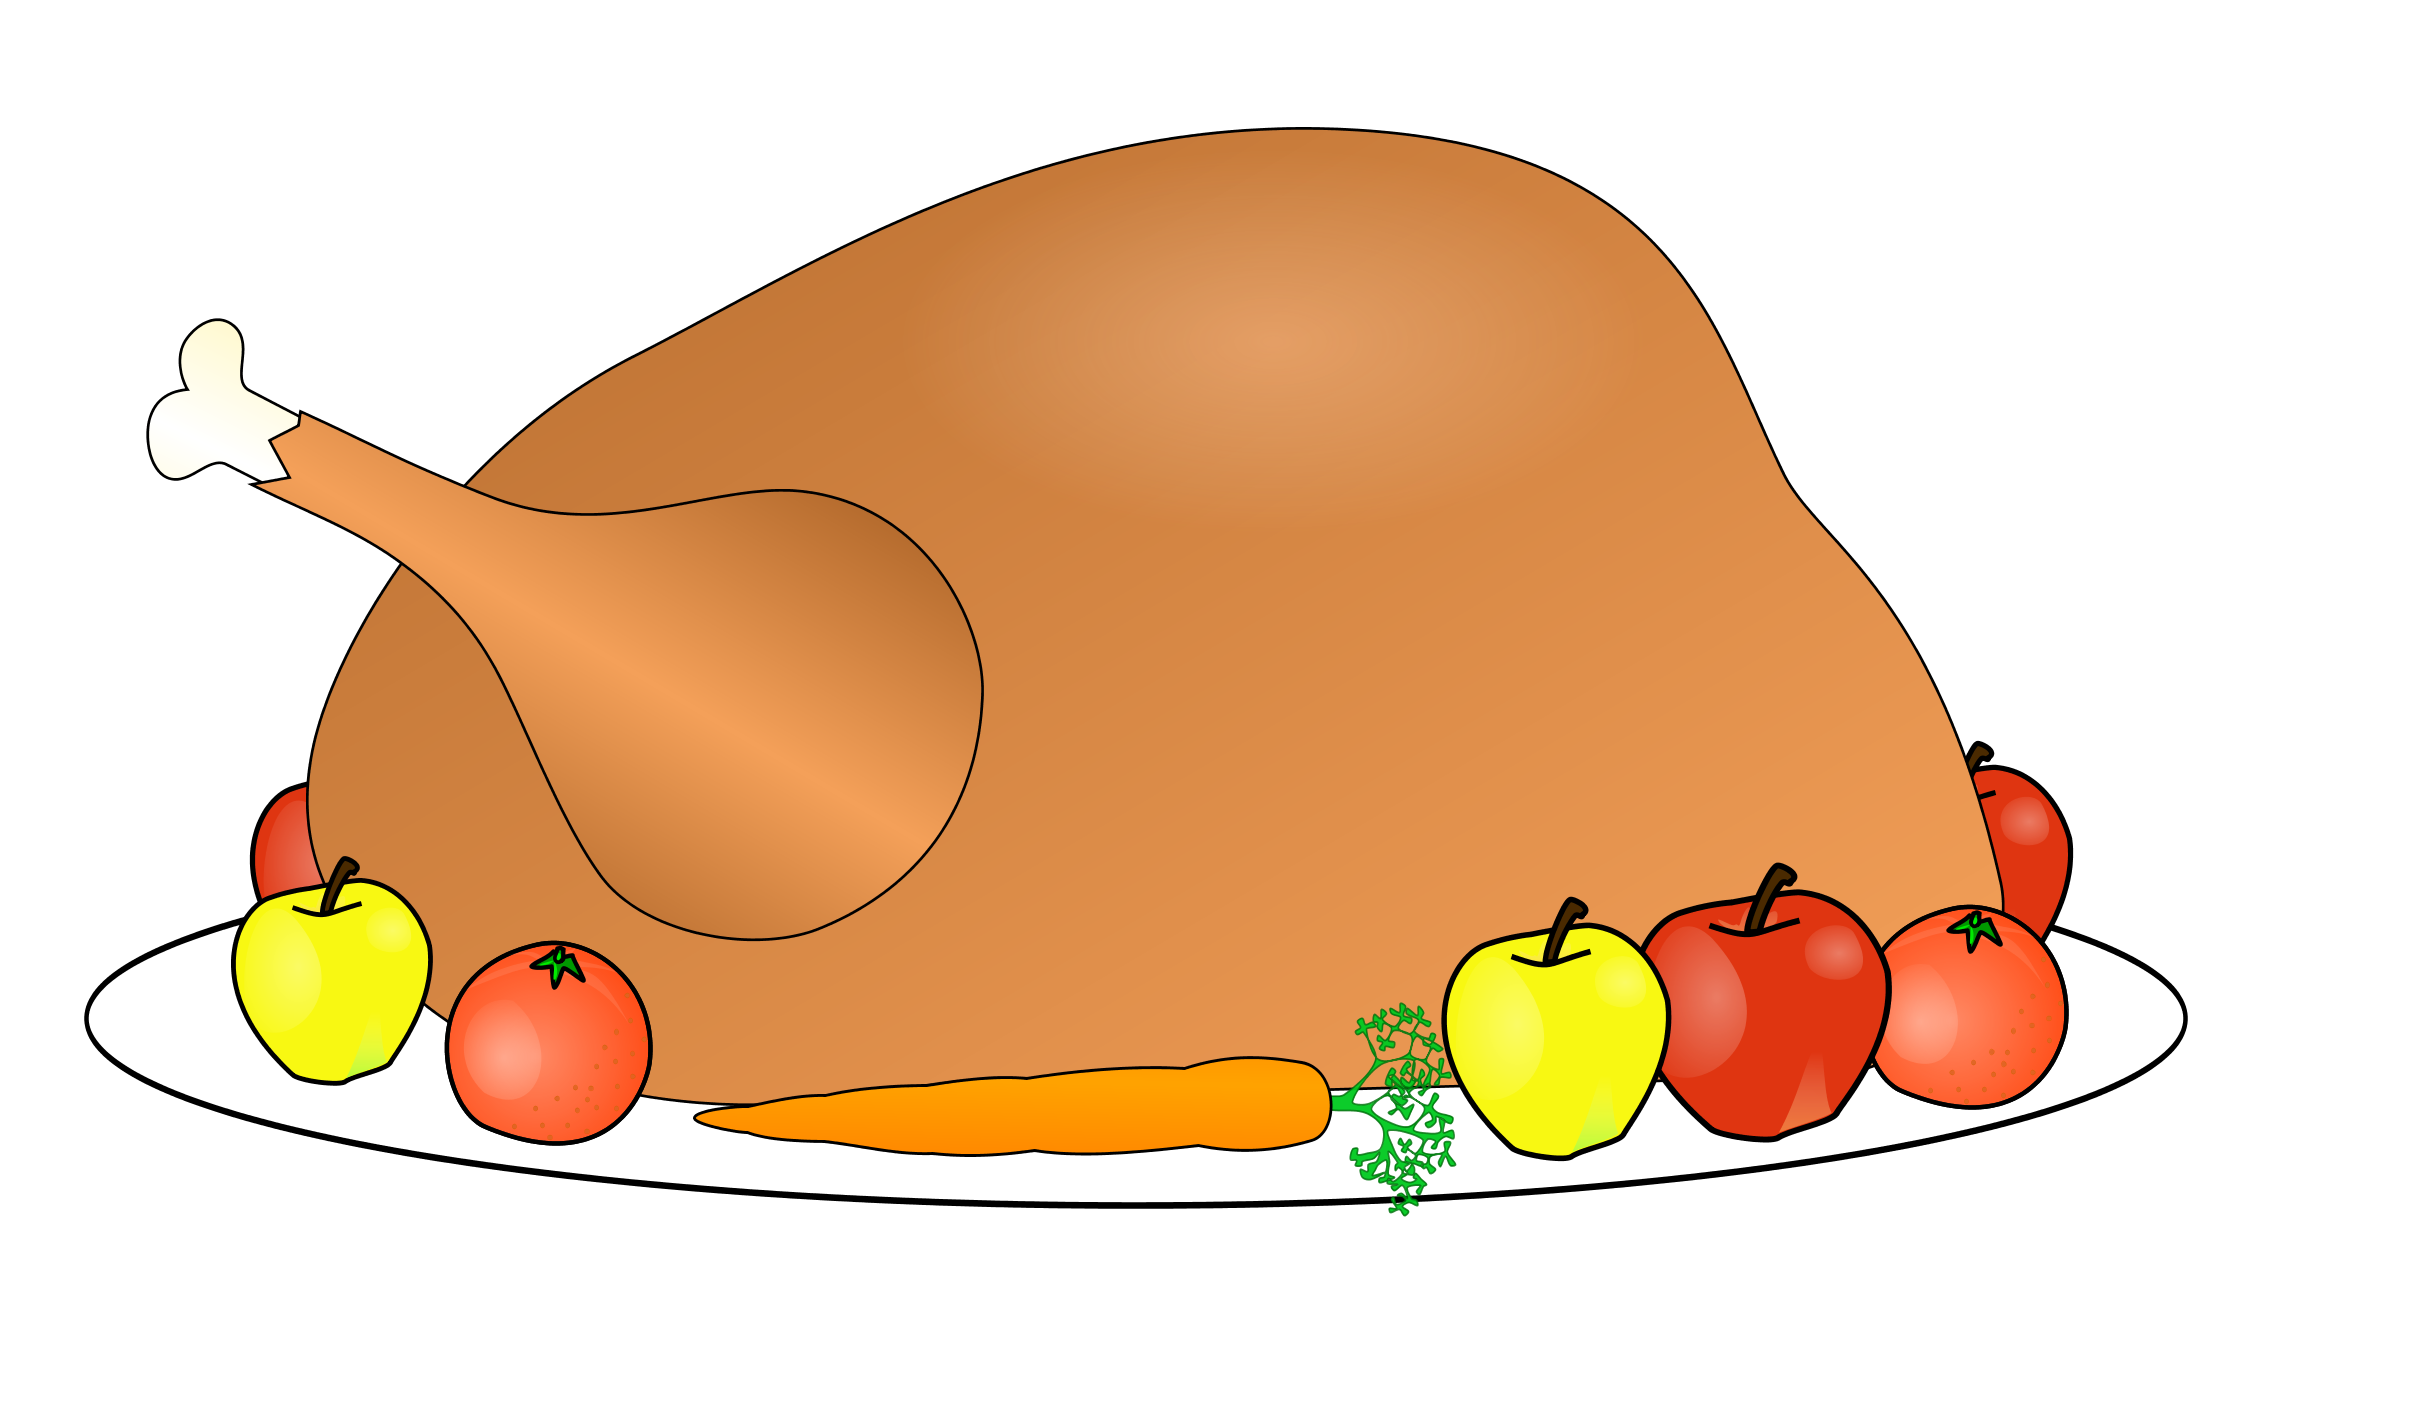 Cooked turkey leg clipart.